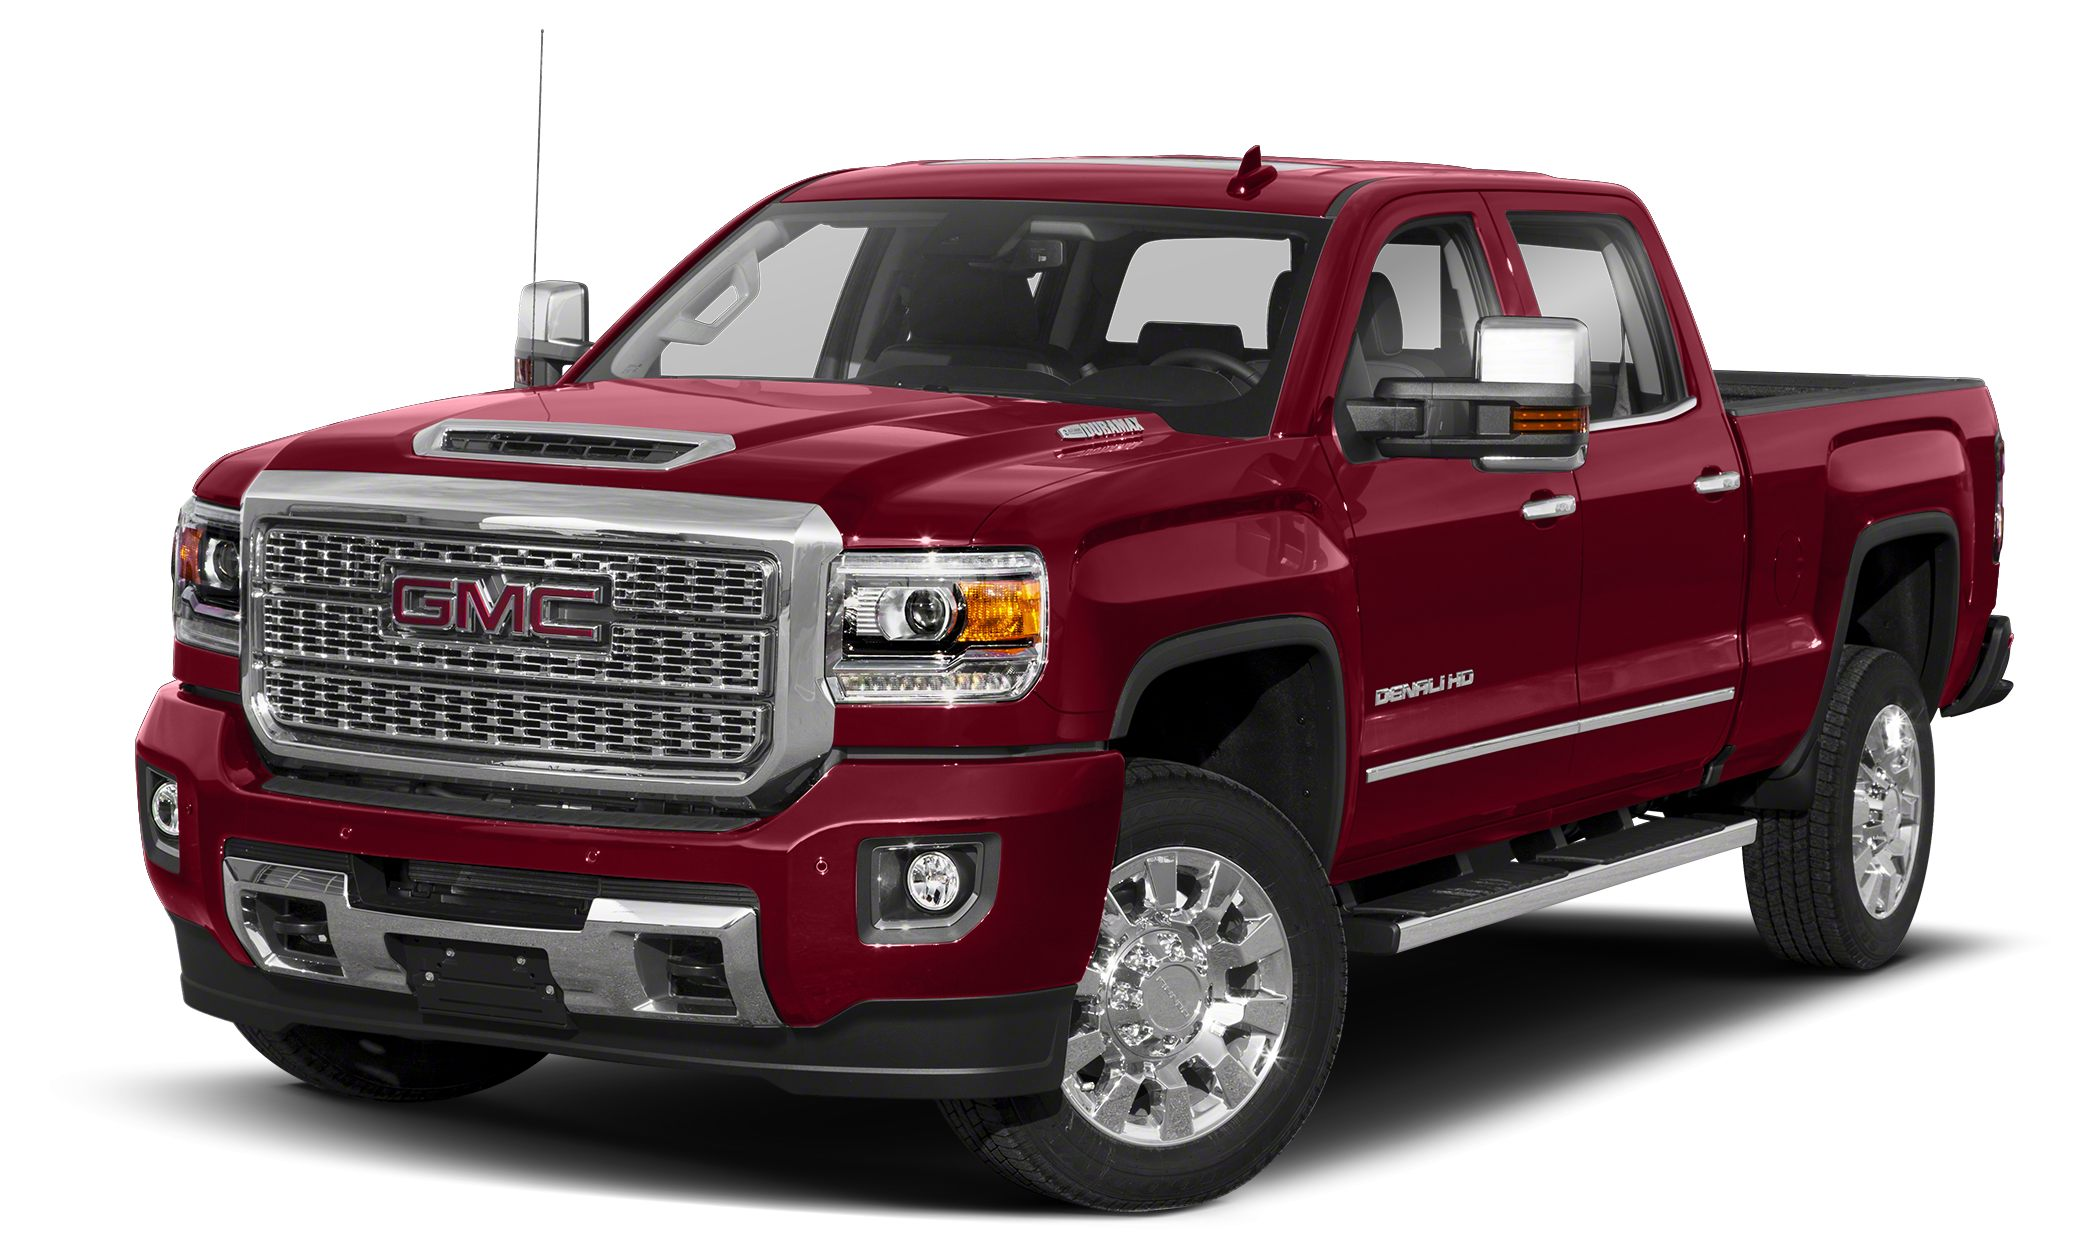 2018 GMC Sierra 2500HD Denali This 2018 GMC Sierra 2500HD Denali features a backup sensor remote